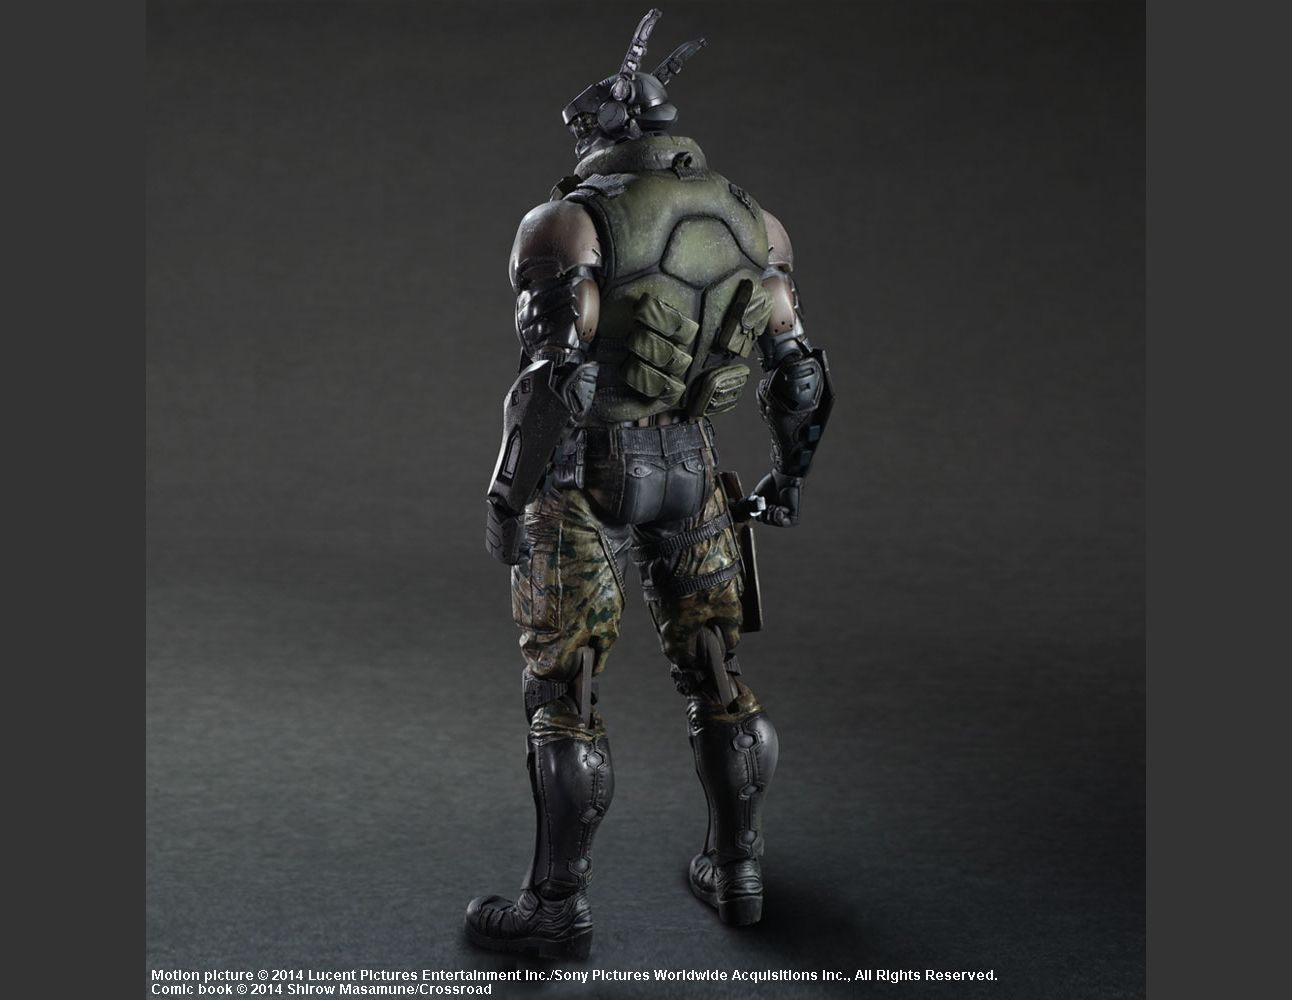 Appleseed Character Design : Appleseed cool action figures pinterest cyberpunk